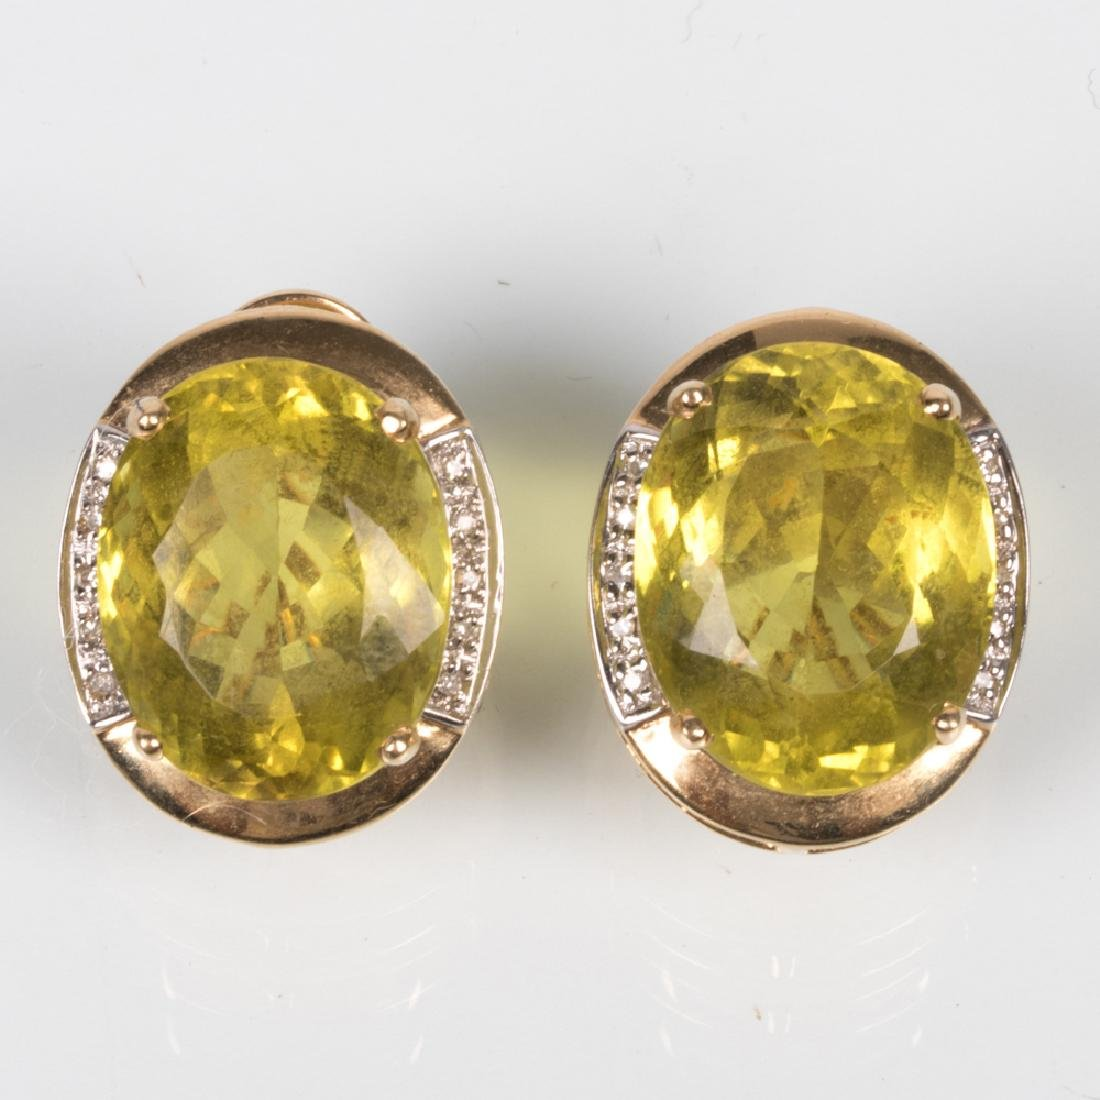 A Pair of 14kt. Yellow Gold, Citrine and Diamond